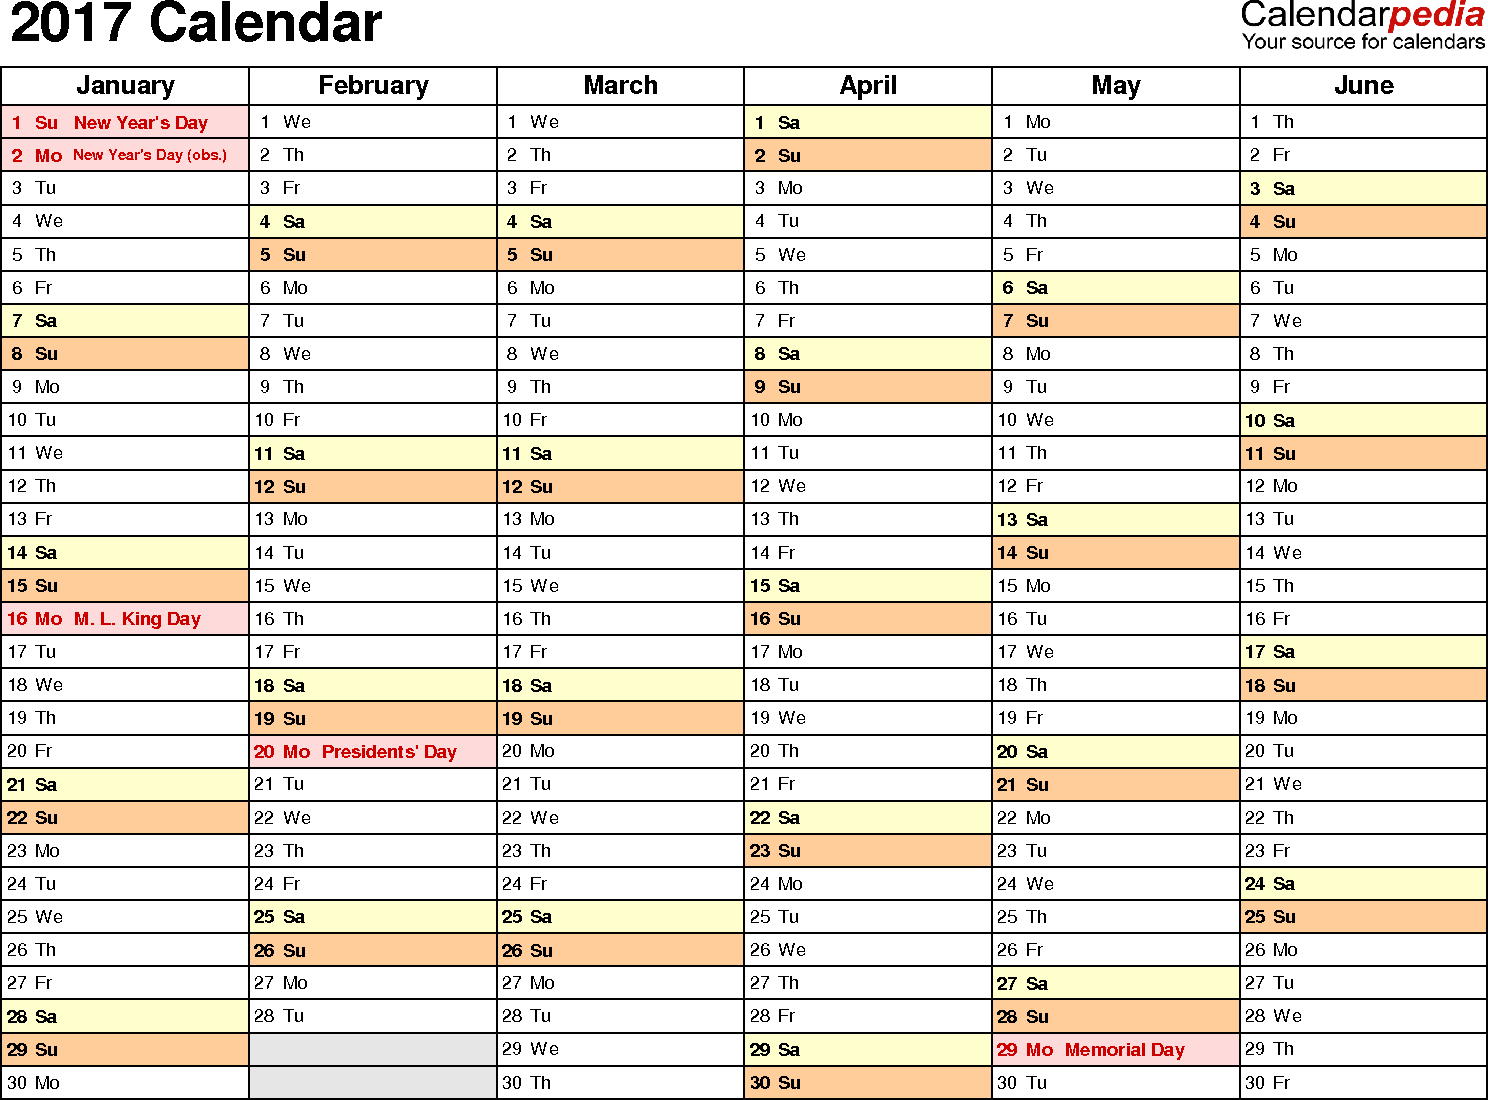 Ediblewildsus  Stunning  Calendar  Download  Free Printable Excel Templates Xls With Inspiring Template   Calendar For Excel Months Horizontally  Pages Landscape Orientation With Comely Range Function Excel Also Useful Excel Formulas In Addition Freeze Cells In Excel  And Column Chart Excel As Well As How To Calculate Covariance In Excel Additionally Excel Normdist From Calendarpediacom With Ediblewildsus  Inspiring  Calendar  Download  Free Printable Excel Templates Xls With Comely Template   Calendar For Excel Months Horizontally  Pages Landscape Orientation And Stunning Range Function Excel Also Useful Excel Formulas In Addition Freeze Cells In Excel  From Calendarpediacom